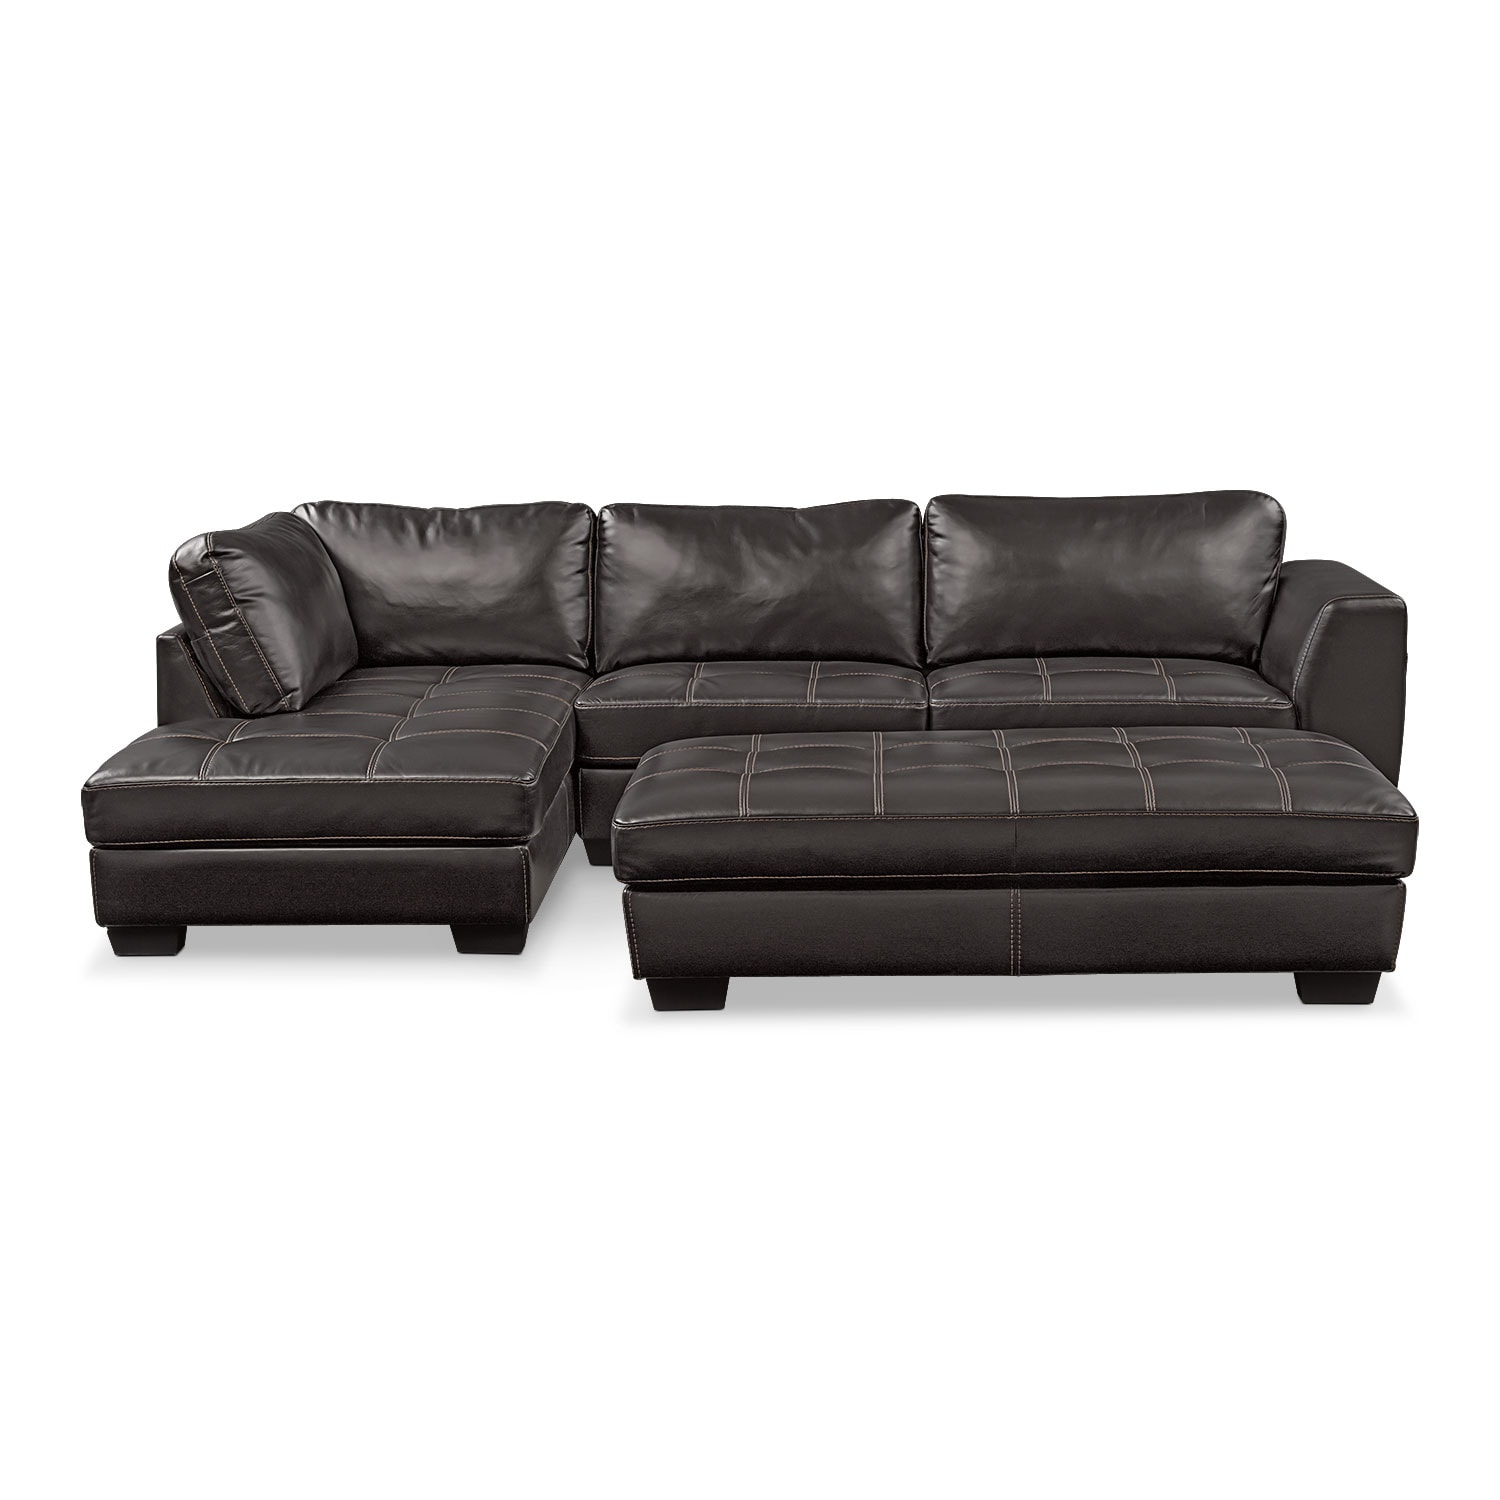 Value City Living Room Furniture Shop Living Room Furniture Value City Furniture